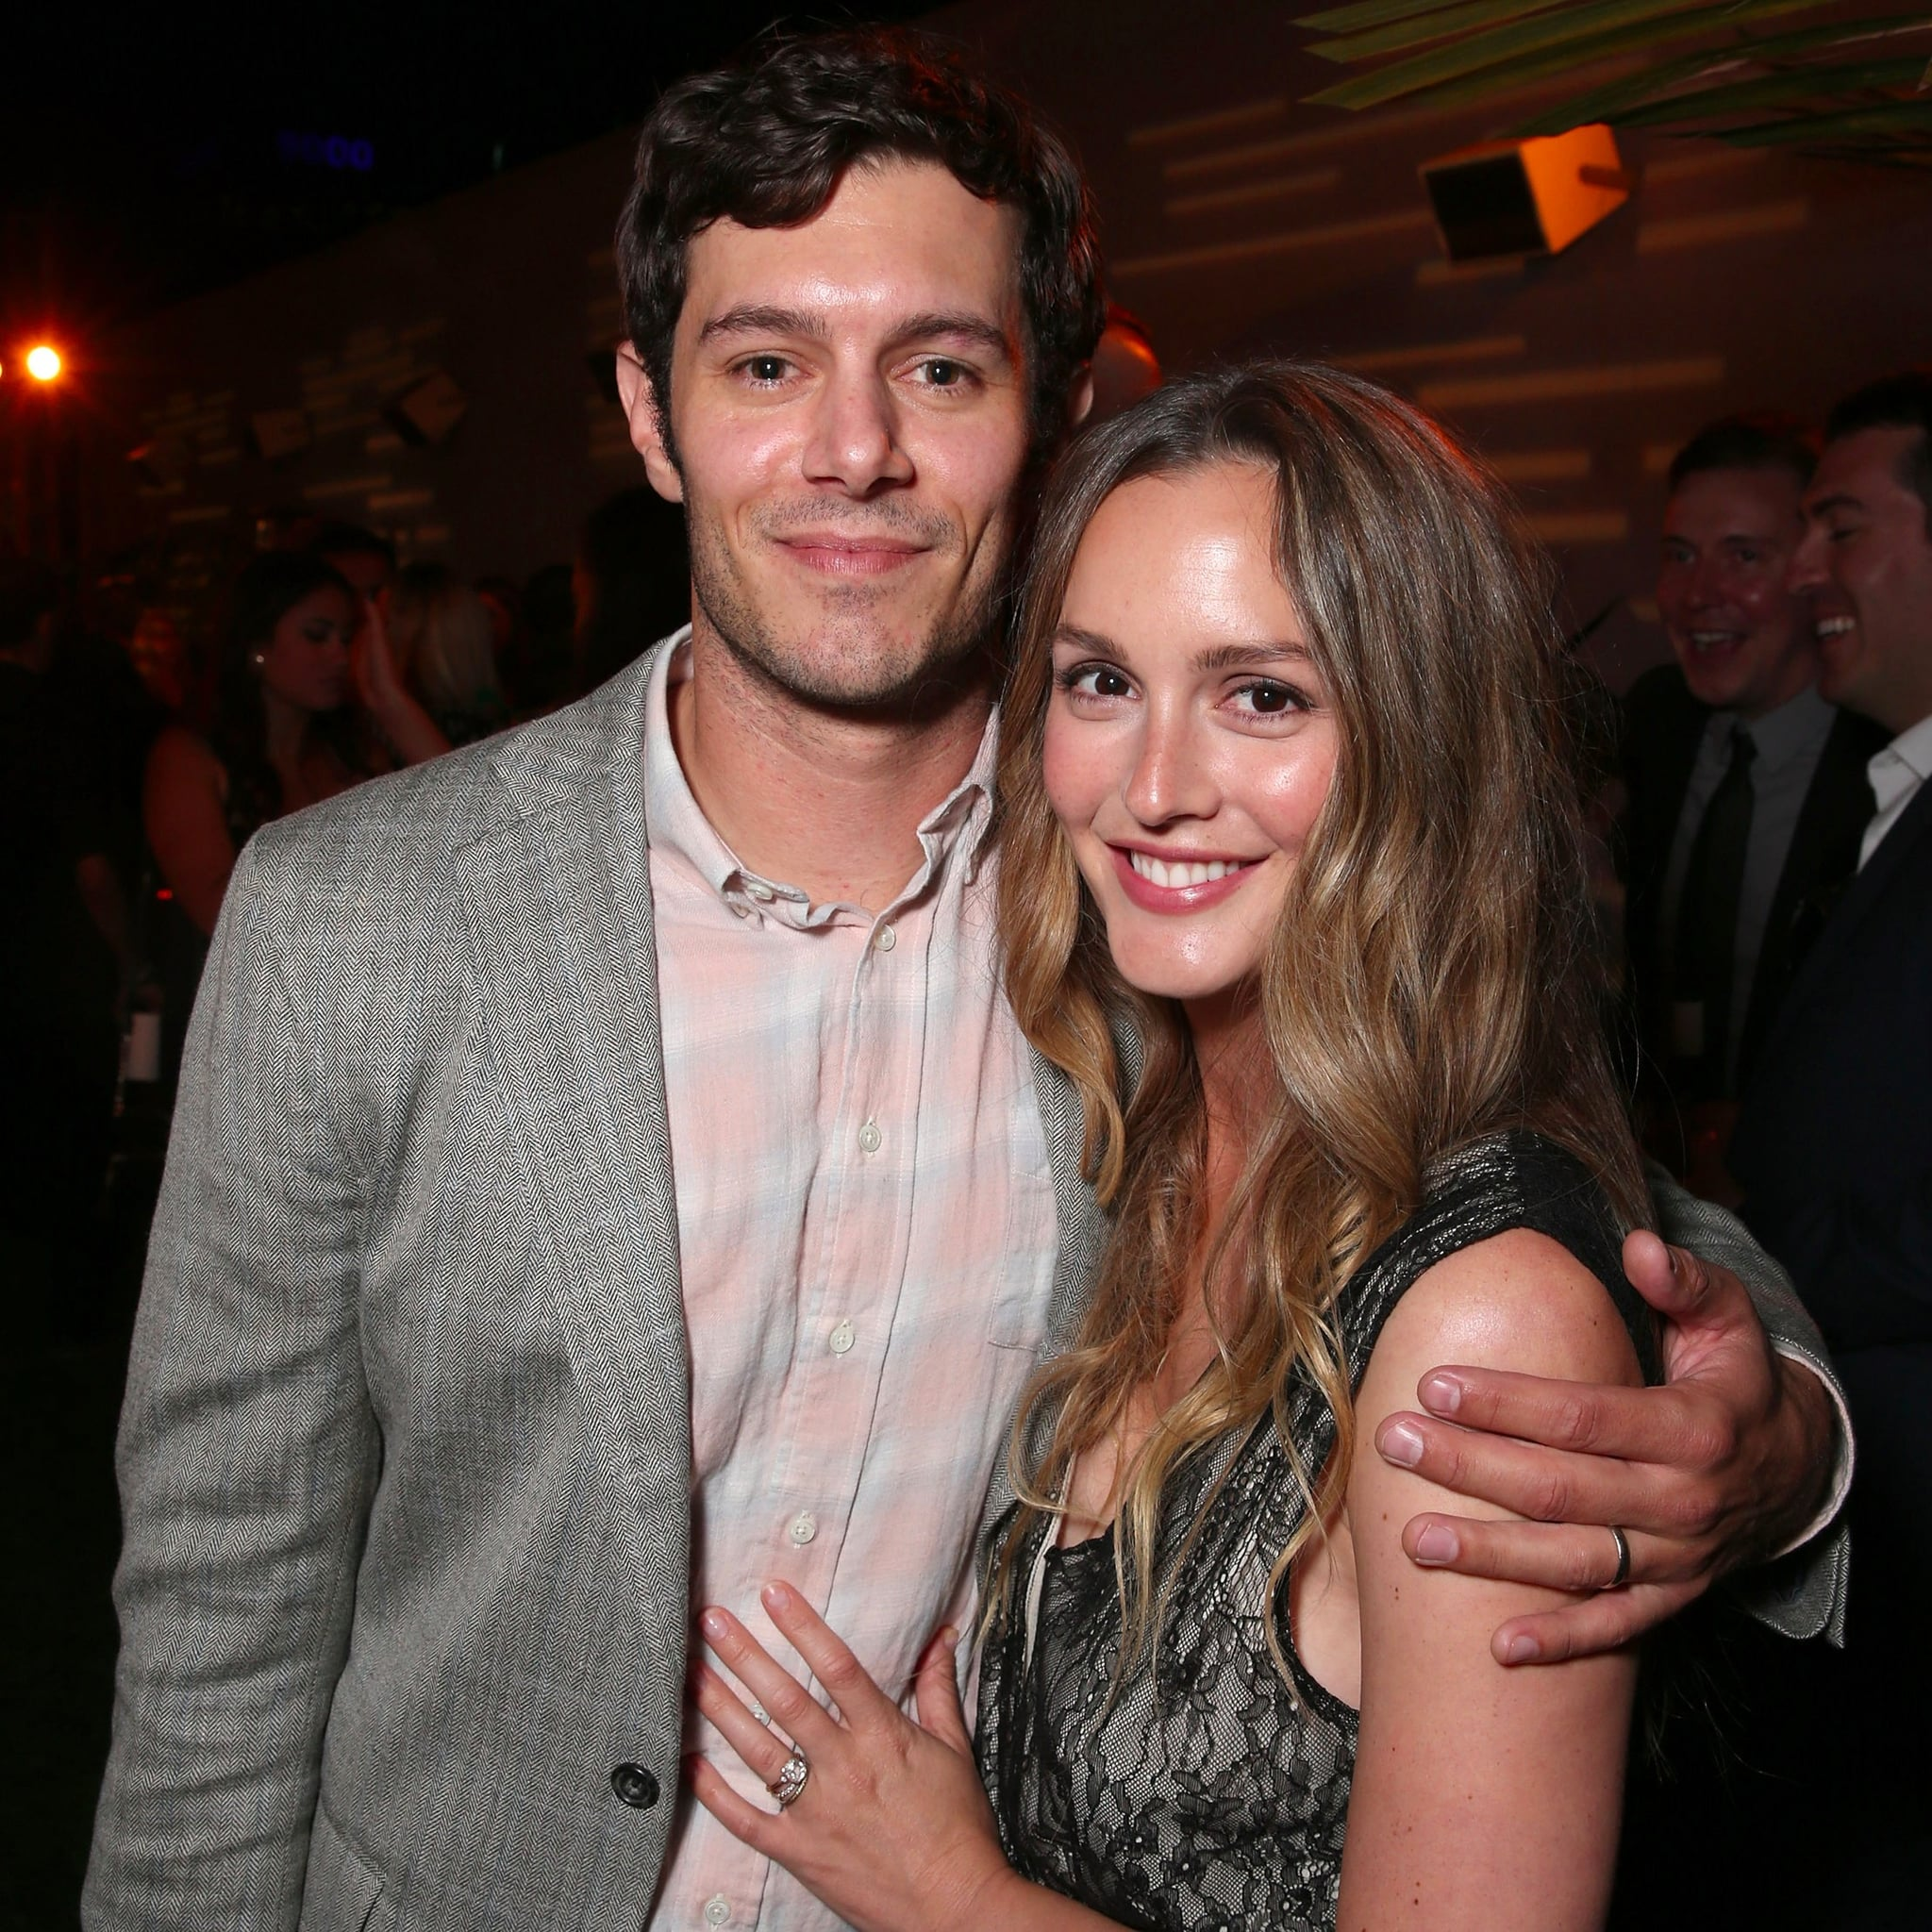 Happily married husband and wife couple: Adm Brody and Leighton Meester